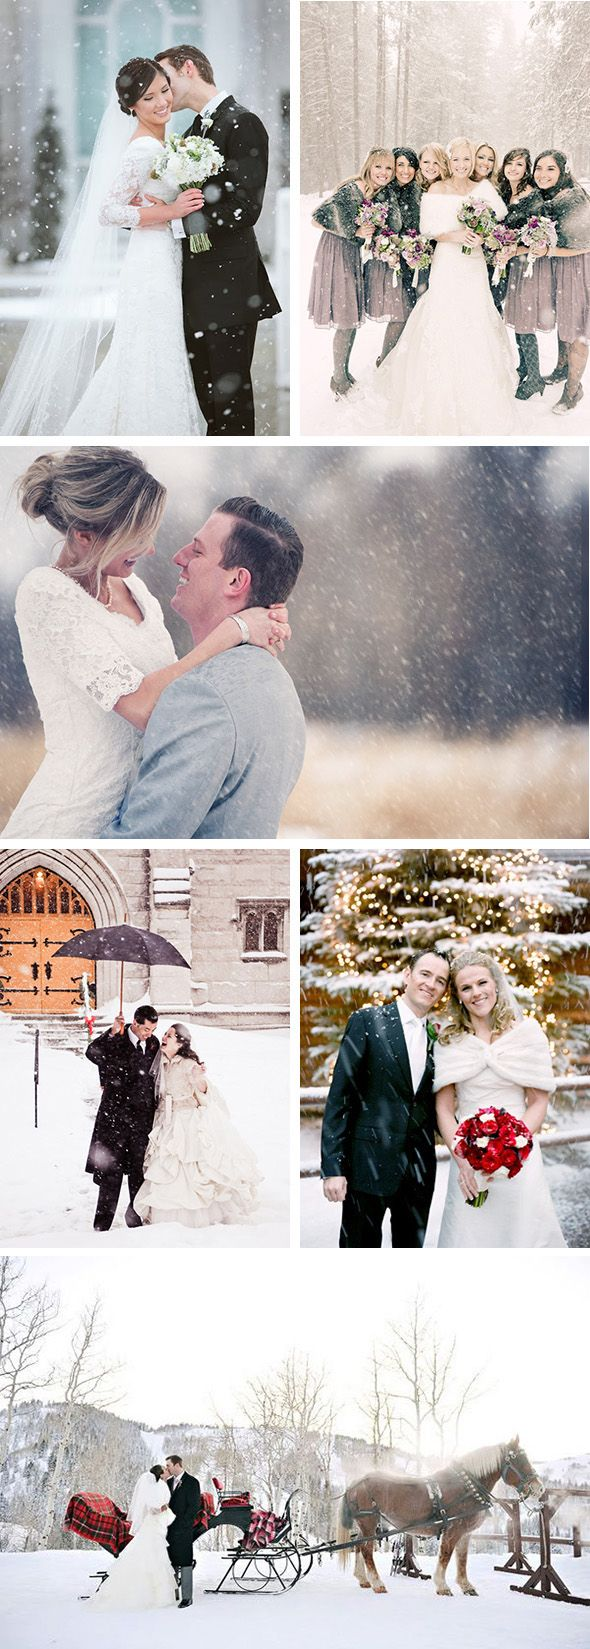 #WinterWedding #inspiration | Like these photos? Choose me as your photographer to recreate them | www.nicoleamanda.ca